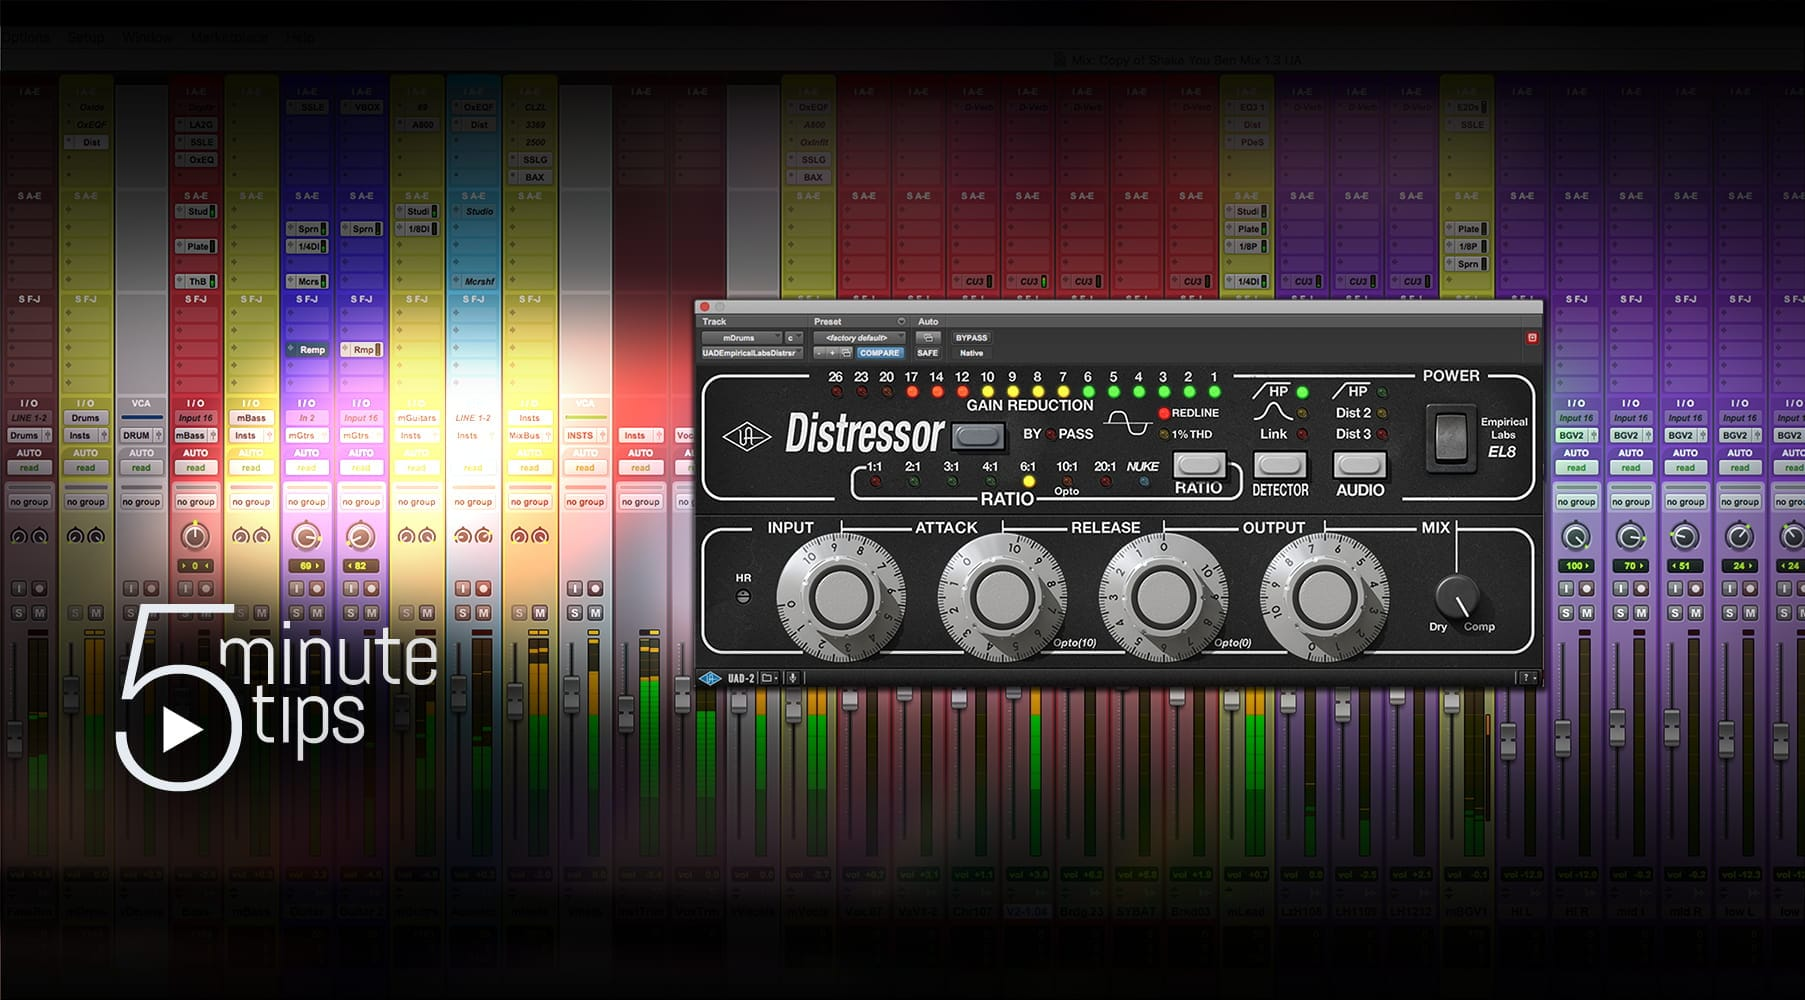 5-Min UAD Tips: Empirical Labs EL8 Distressor